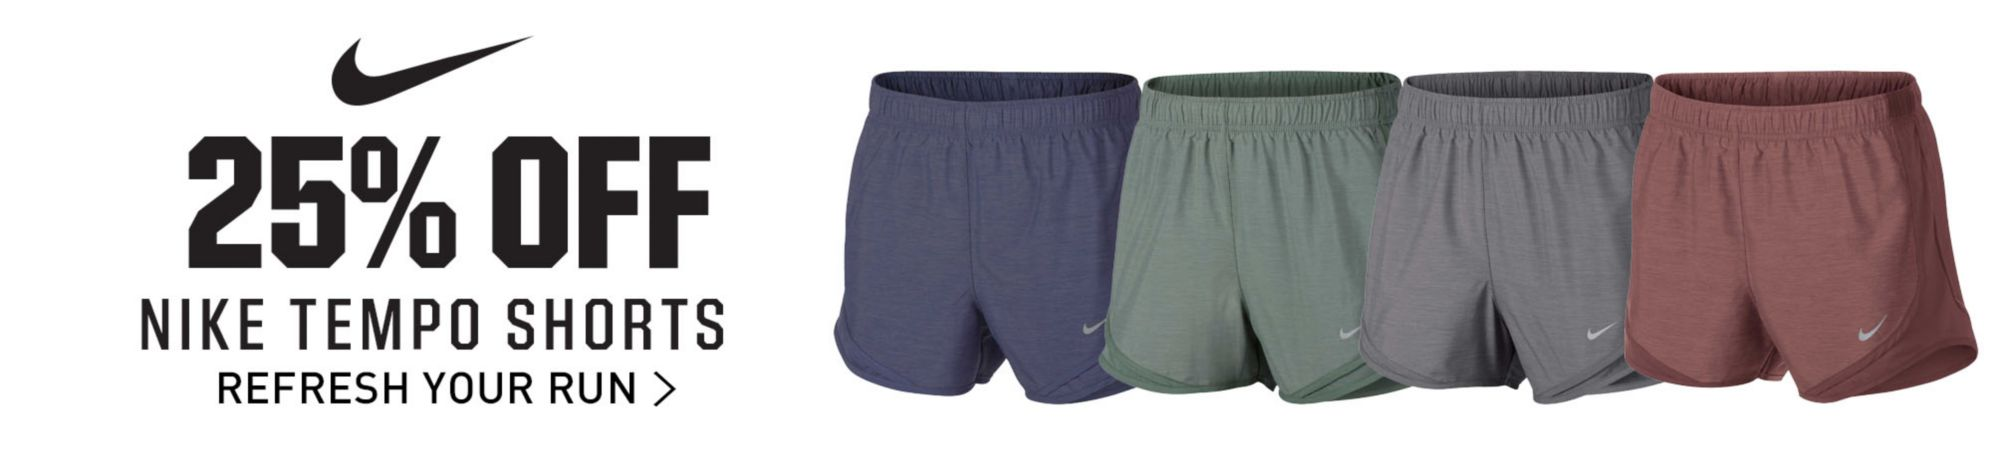 25% Off Nike Tempo Shorts - Shop Now